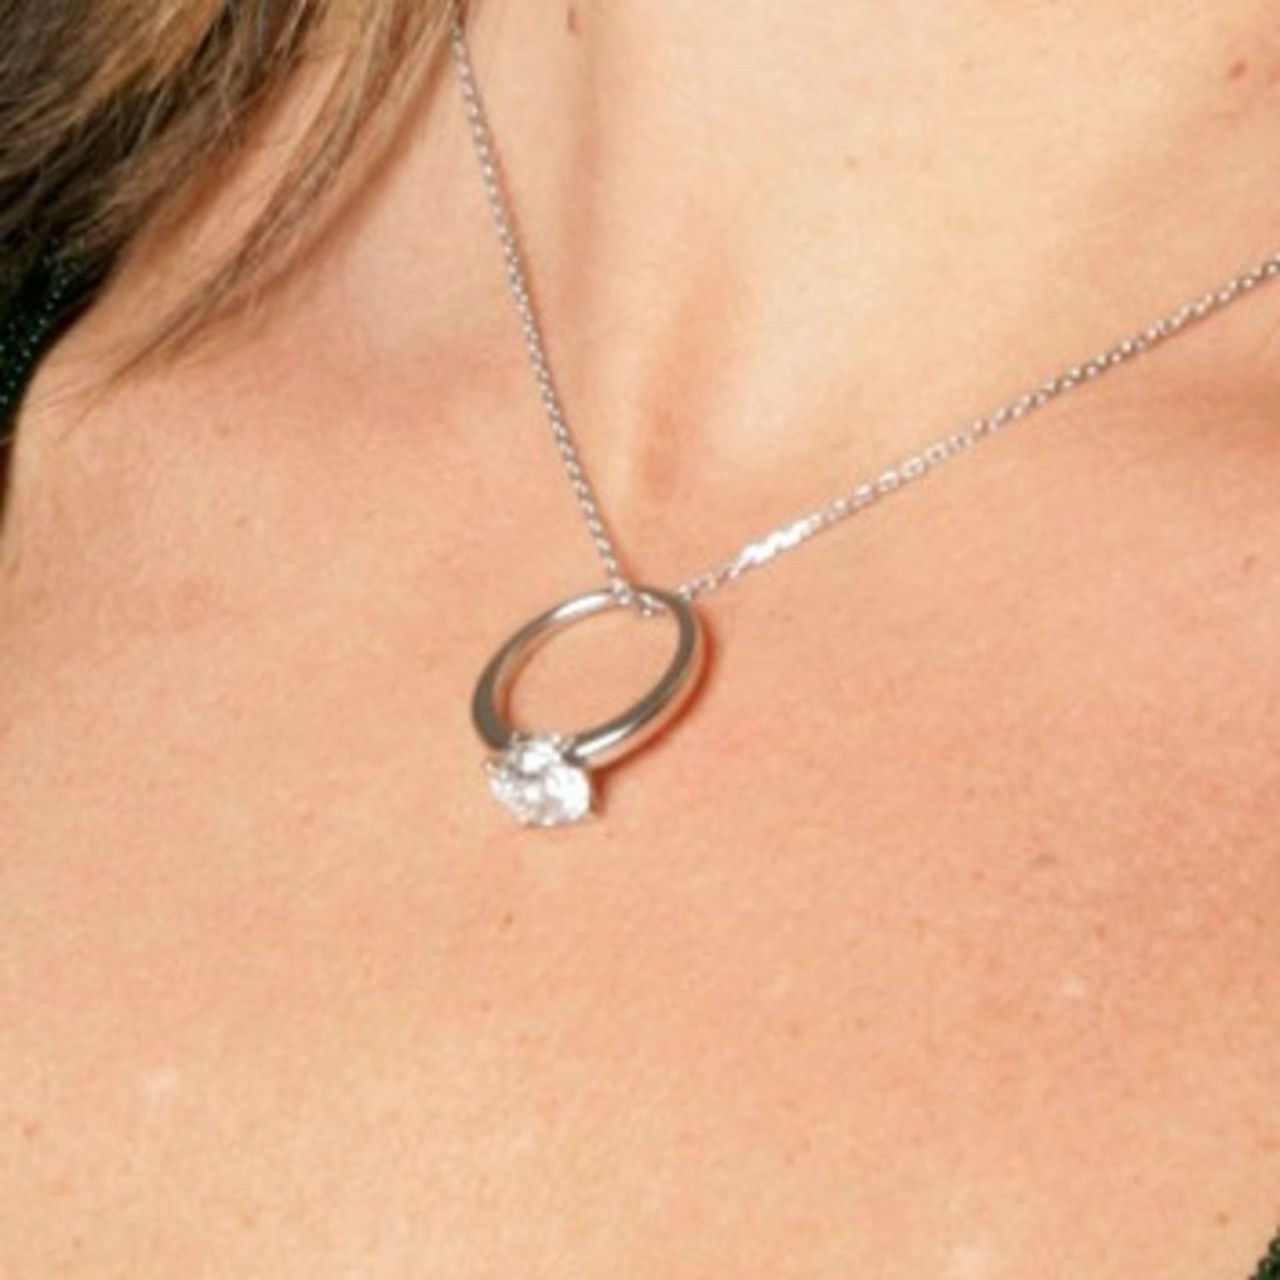 1 1 bachelor bachelorette engagement ring pictures travis stork sarah stone 0606 courtesy